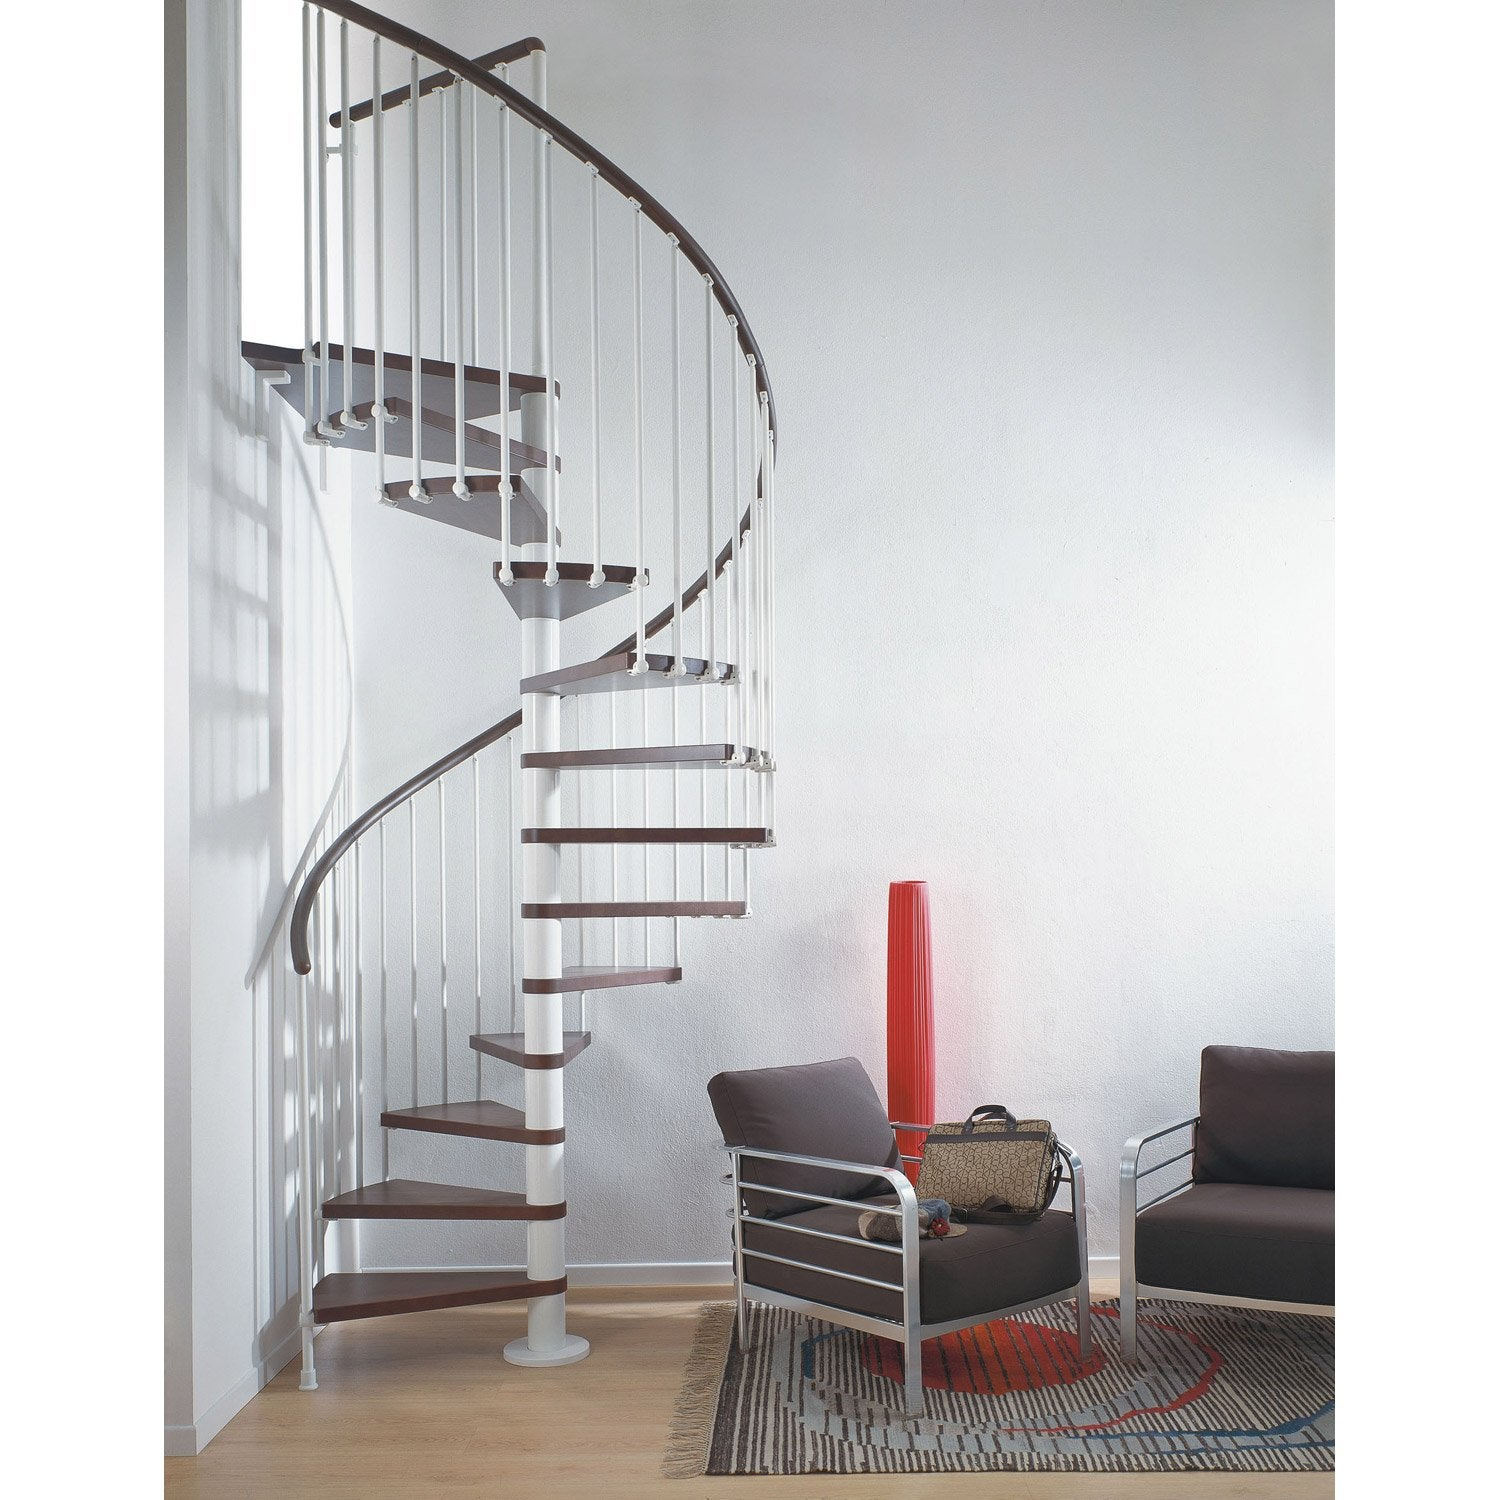 Escalier colima on rond ring marches bois structure m tal blanc leroy merlin - Escaliers leroy merlin ...